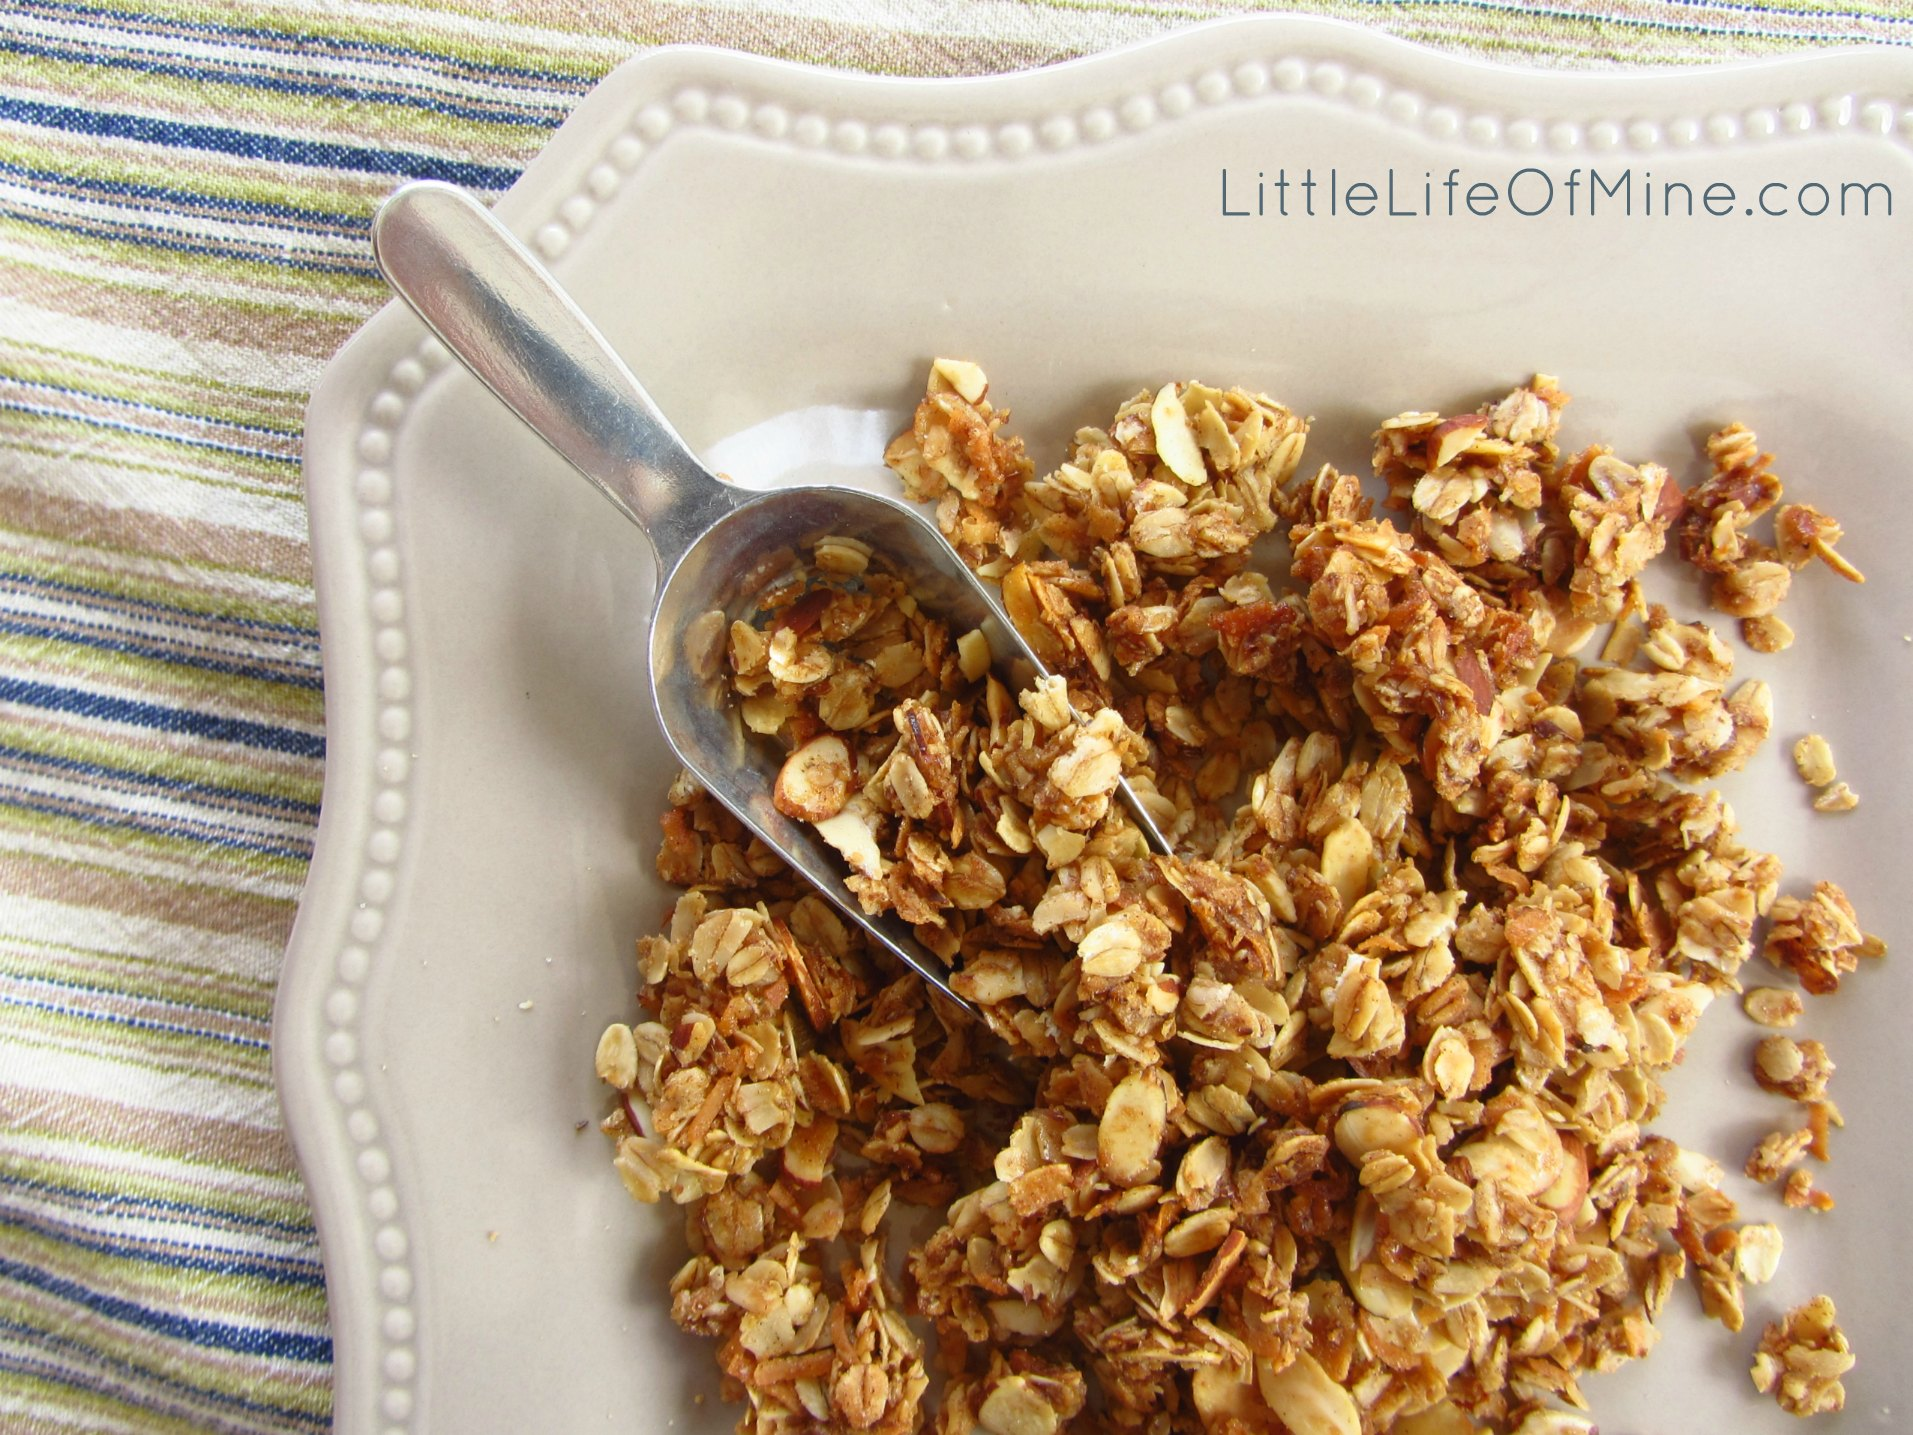 Homemade Almond Coconut Granola